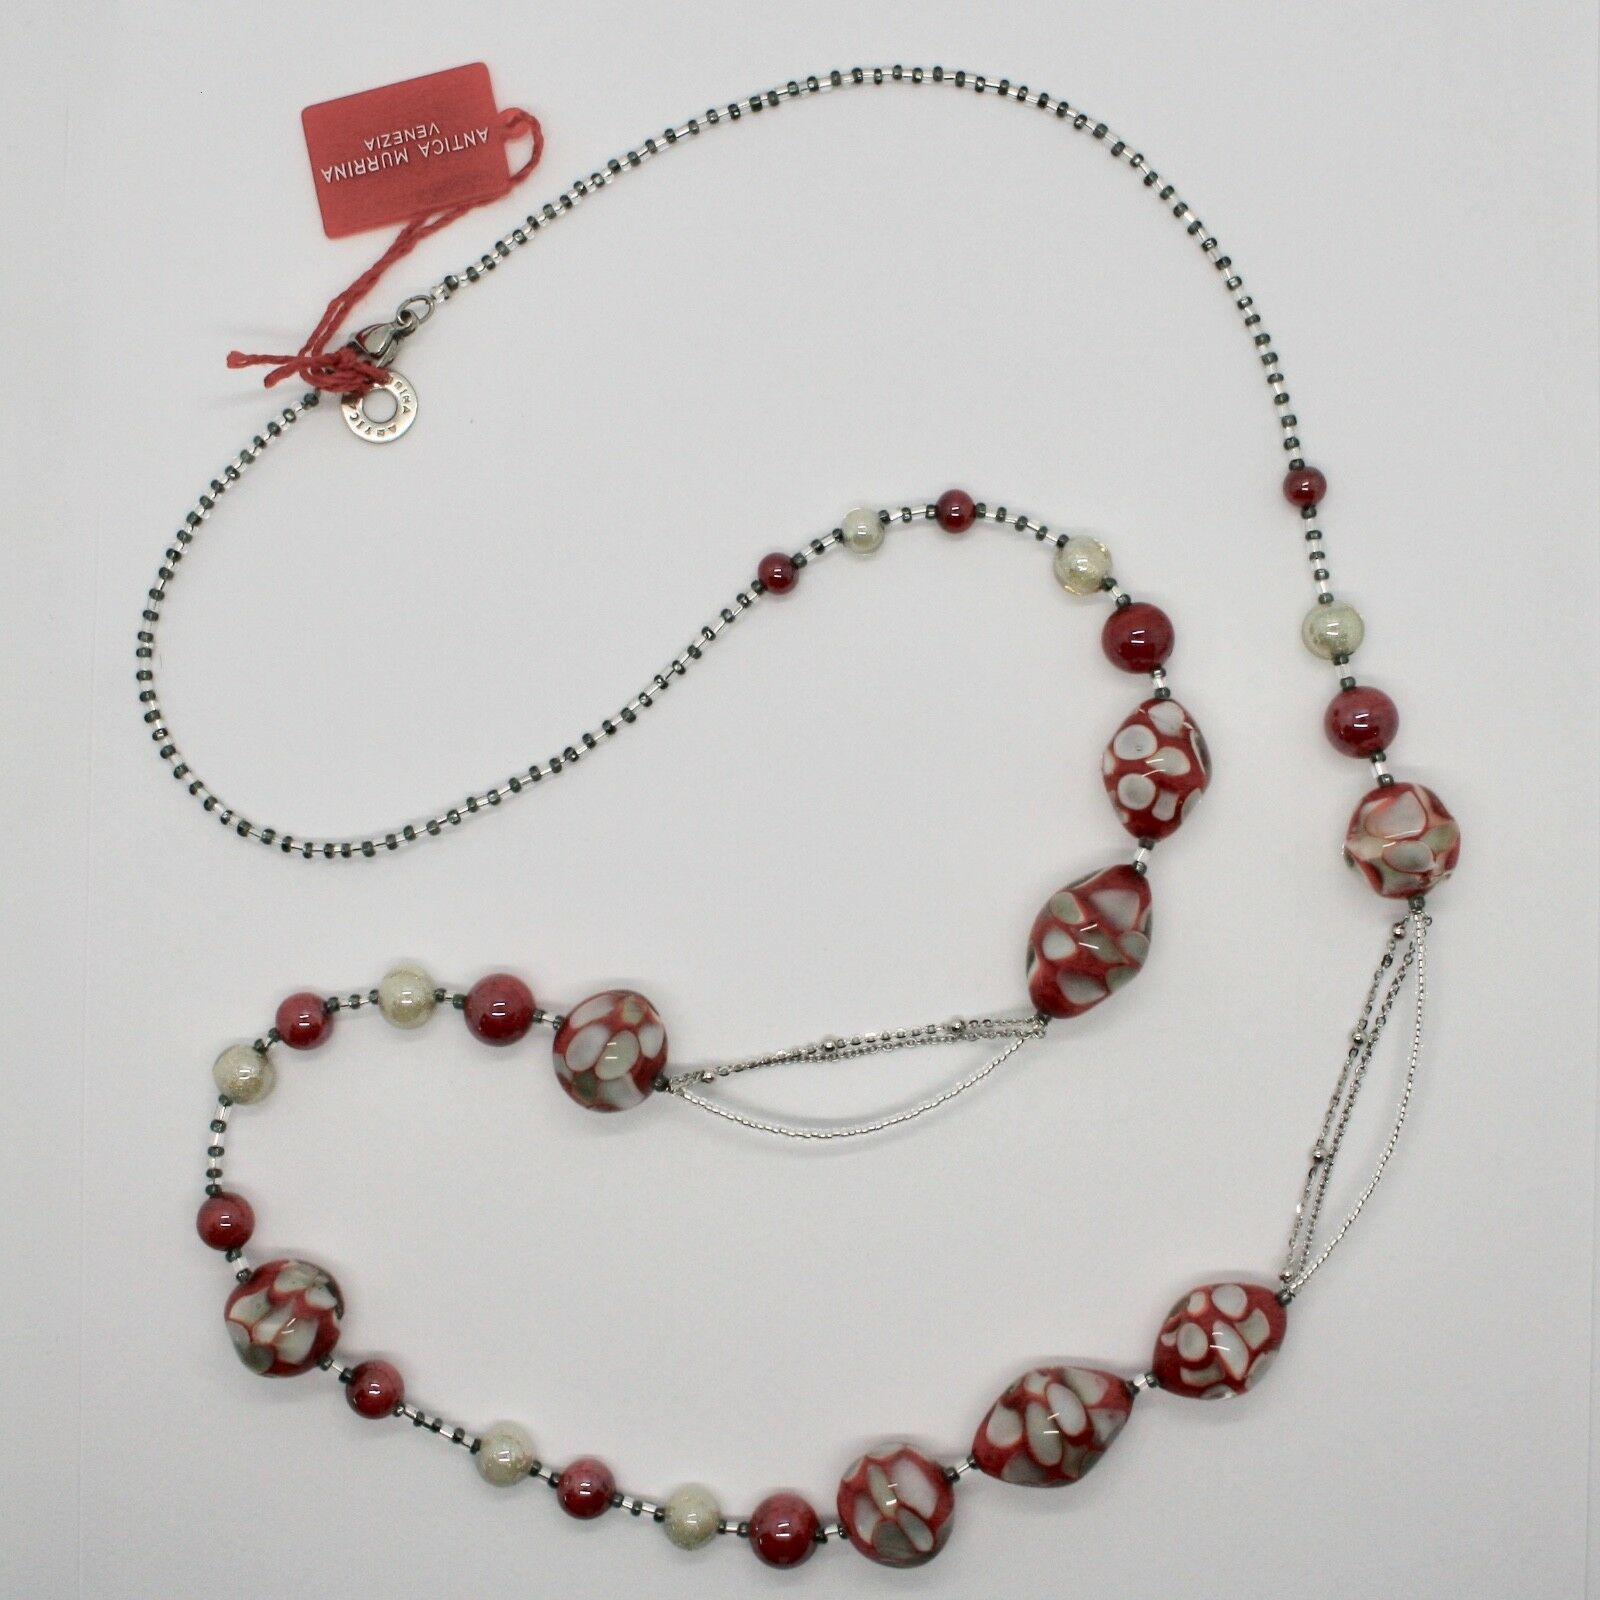 Necklace Antique Murrina Venezia with Murano Glass Red Beige Sand COA09A31